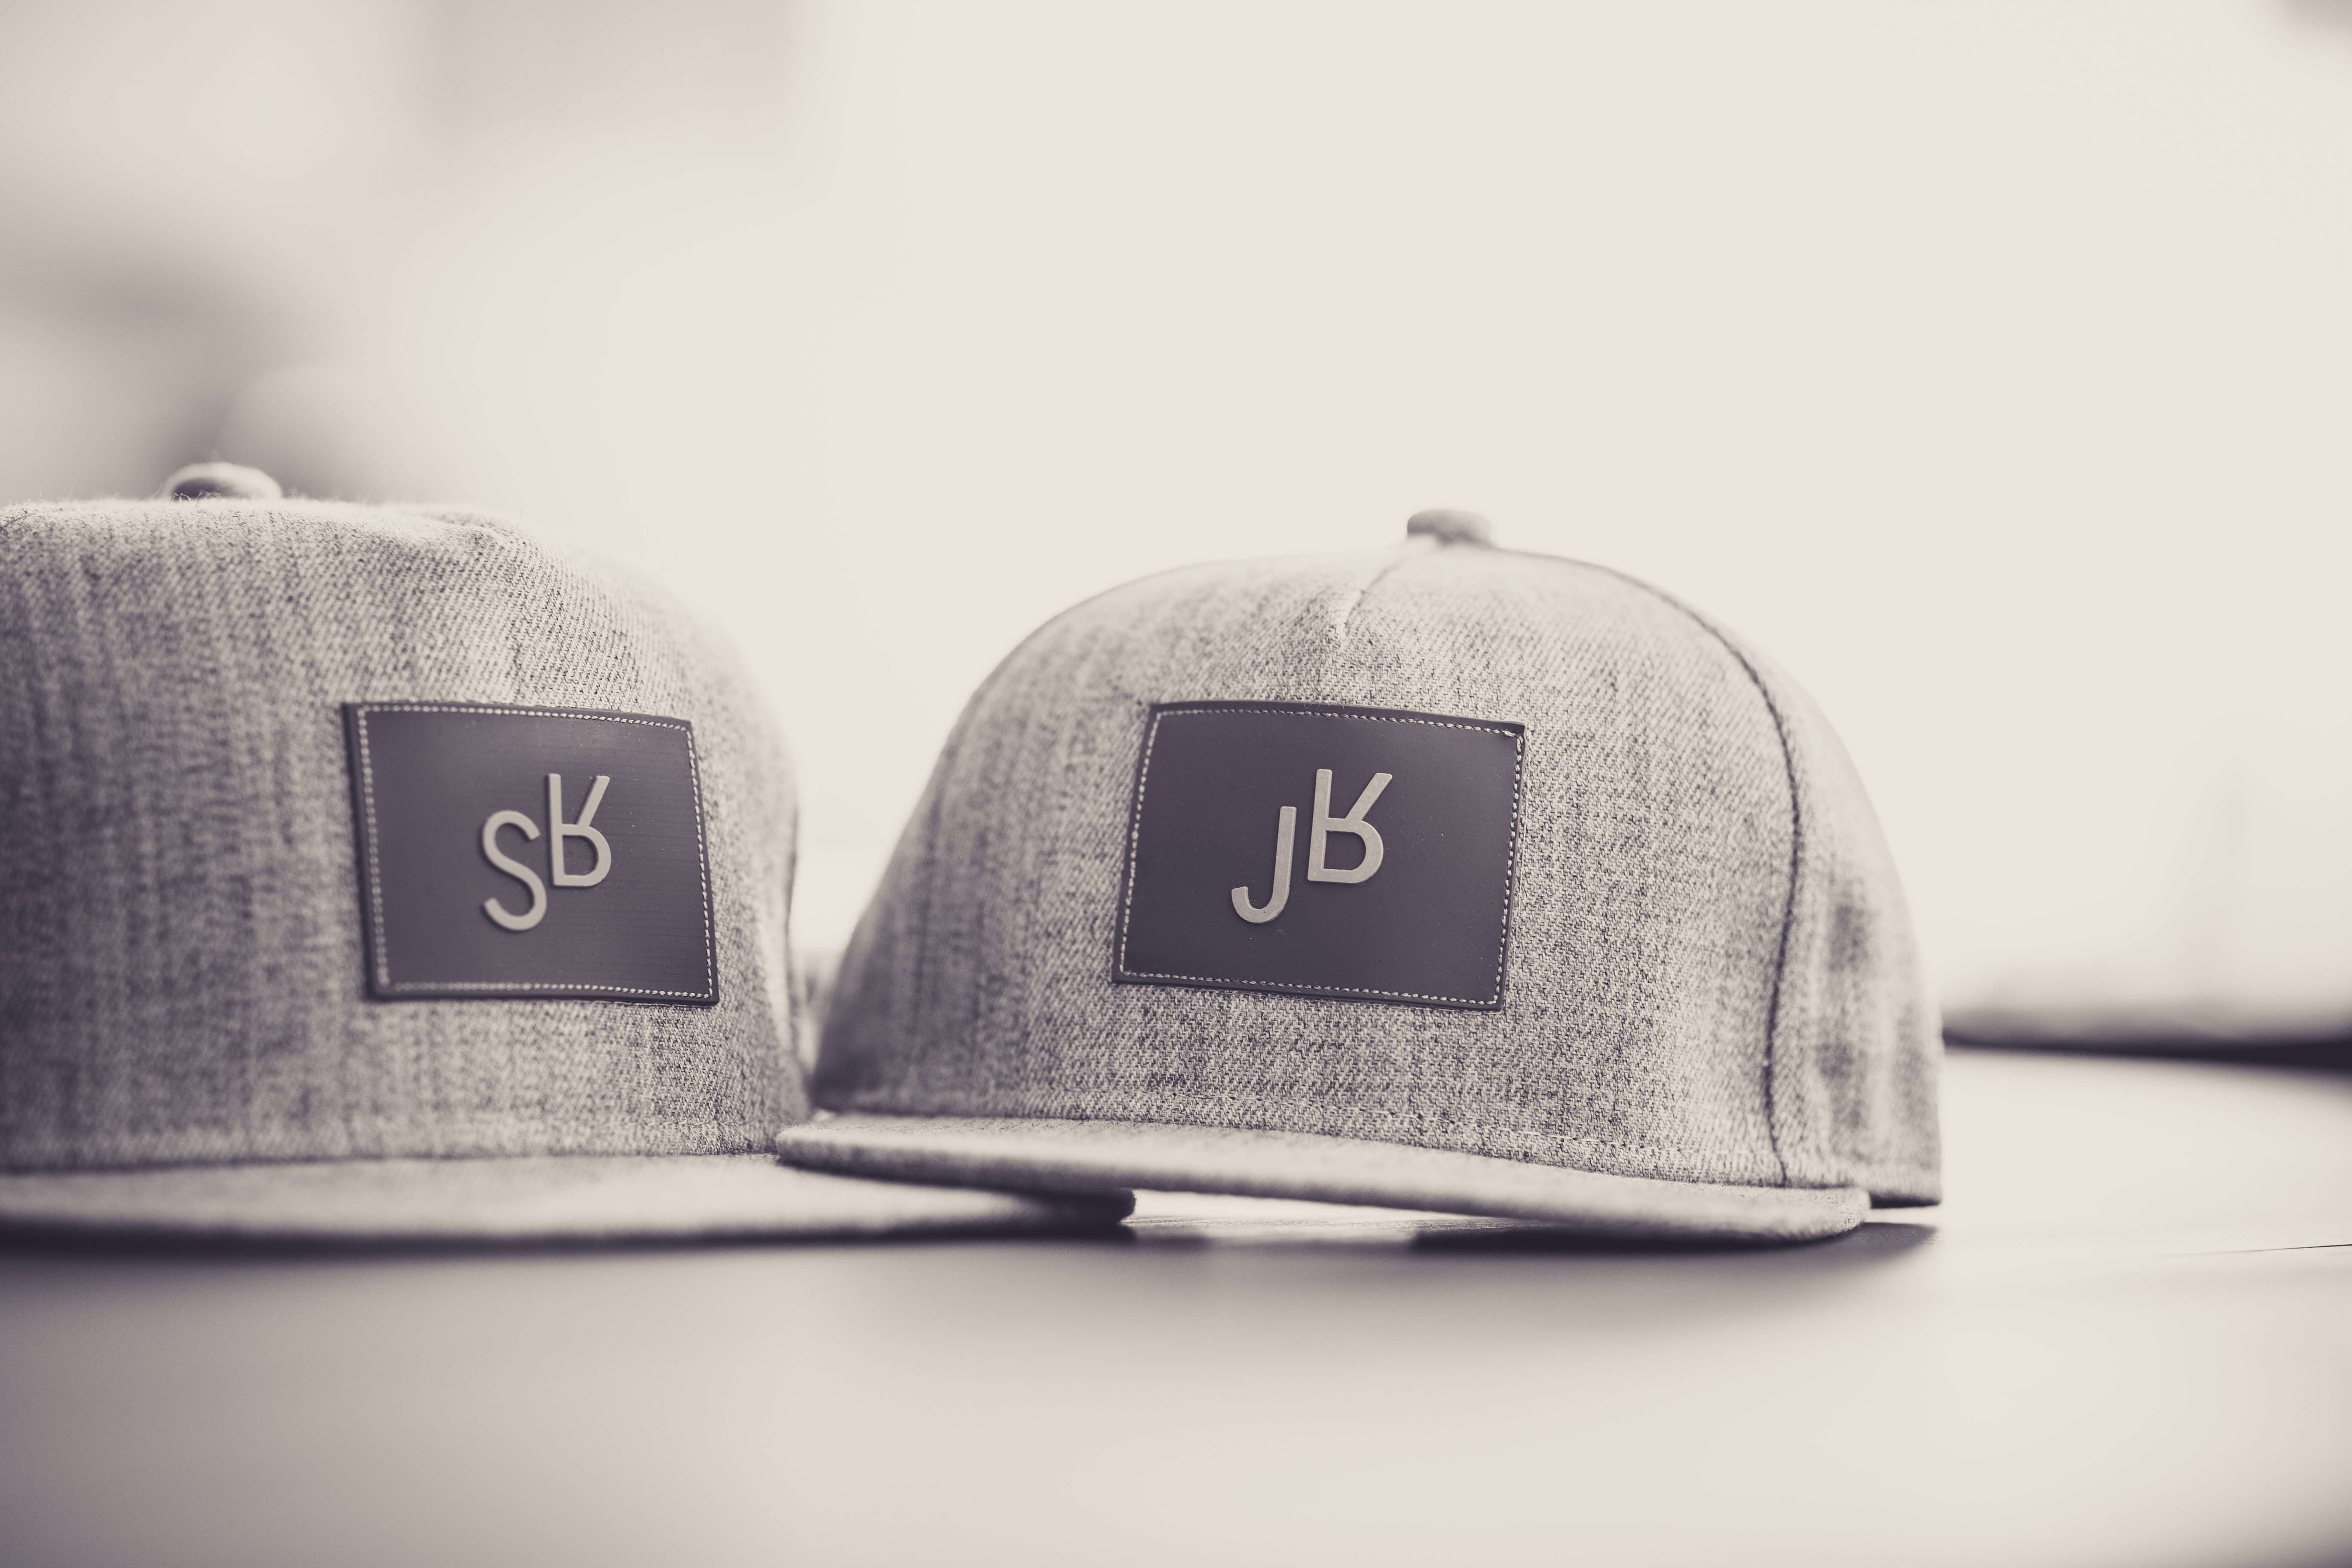 Daddy And Me - SR And JR Grey Snapback Hats